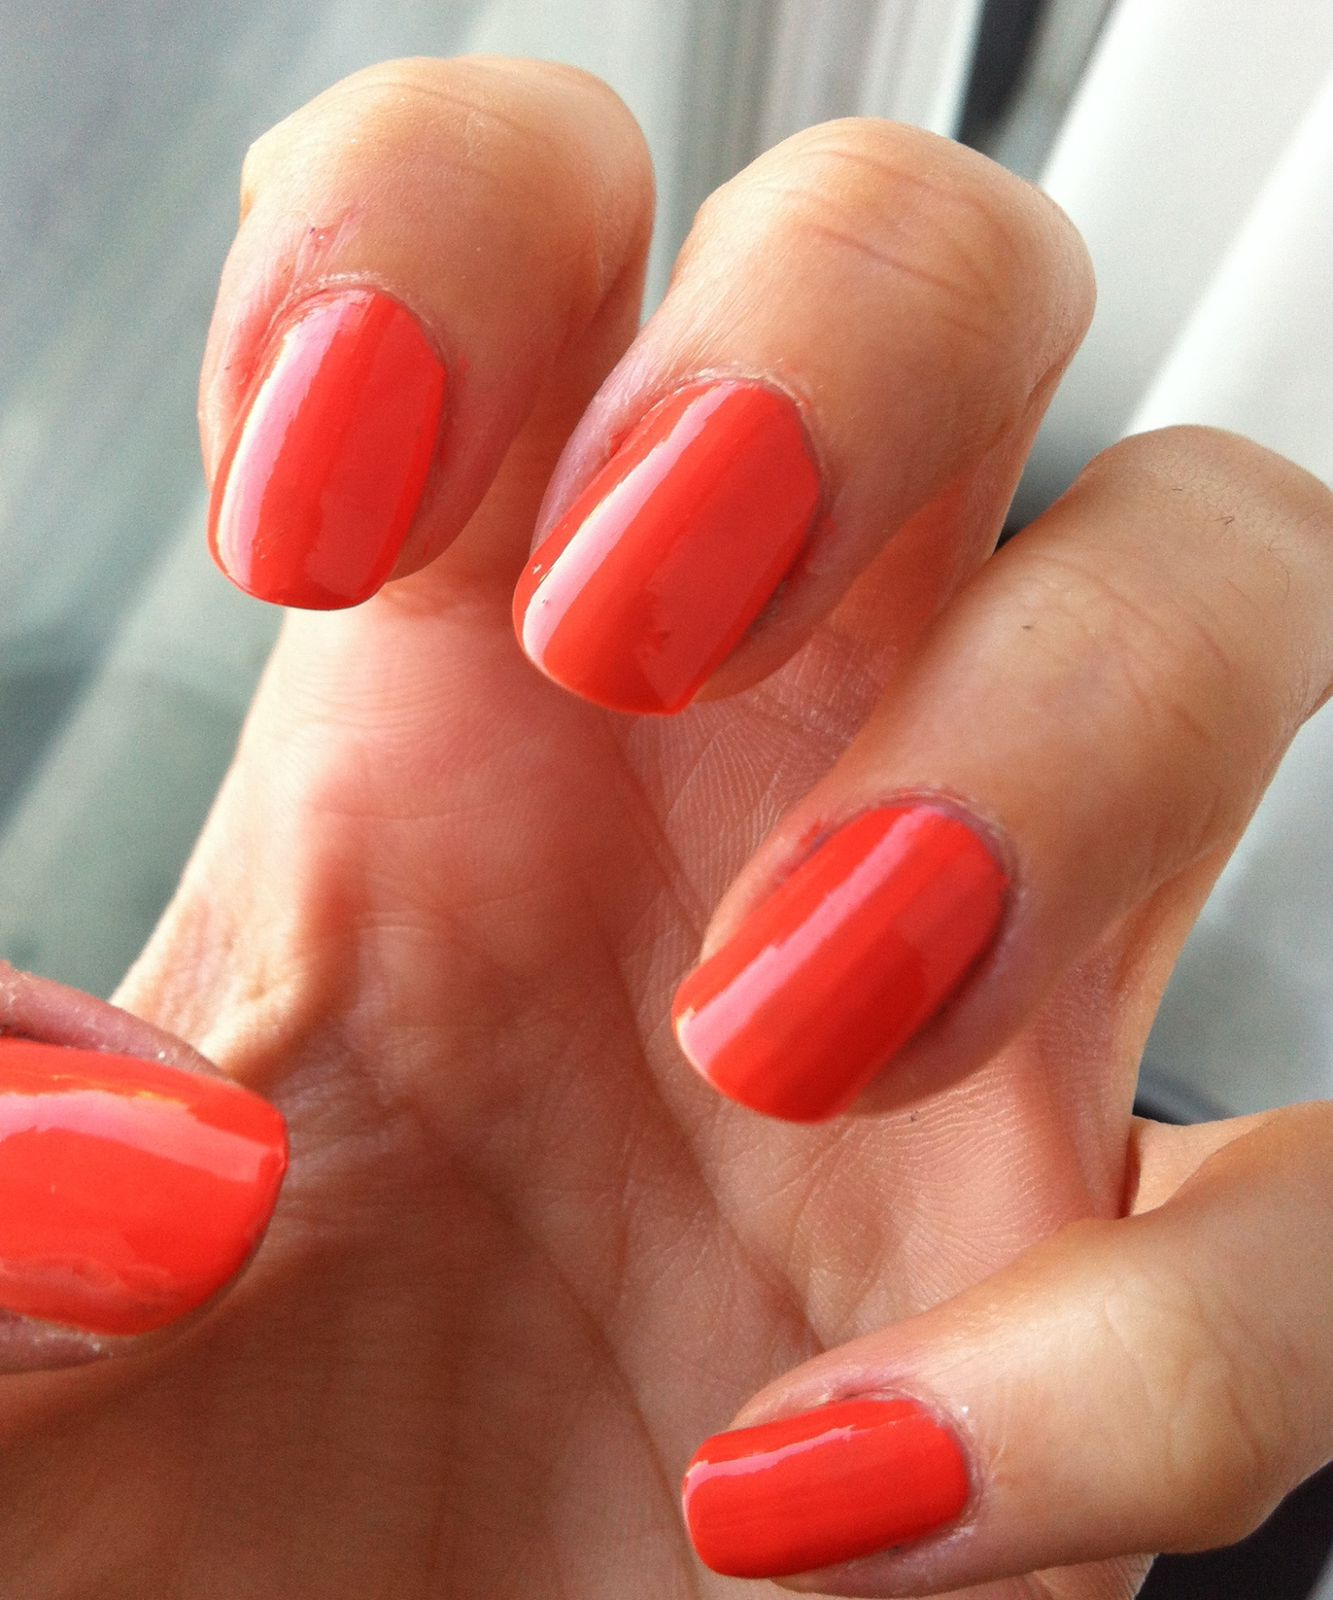 tequila sunrise nail art- gosh 021 peachy rose szwatch